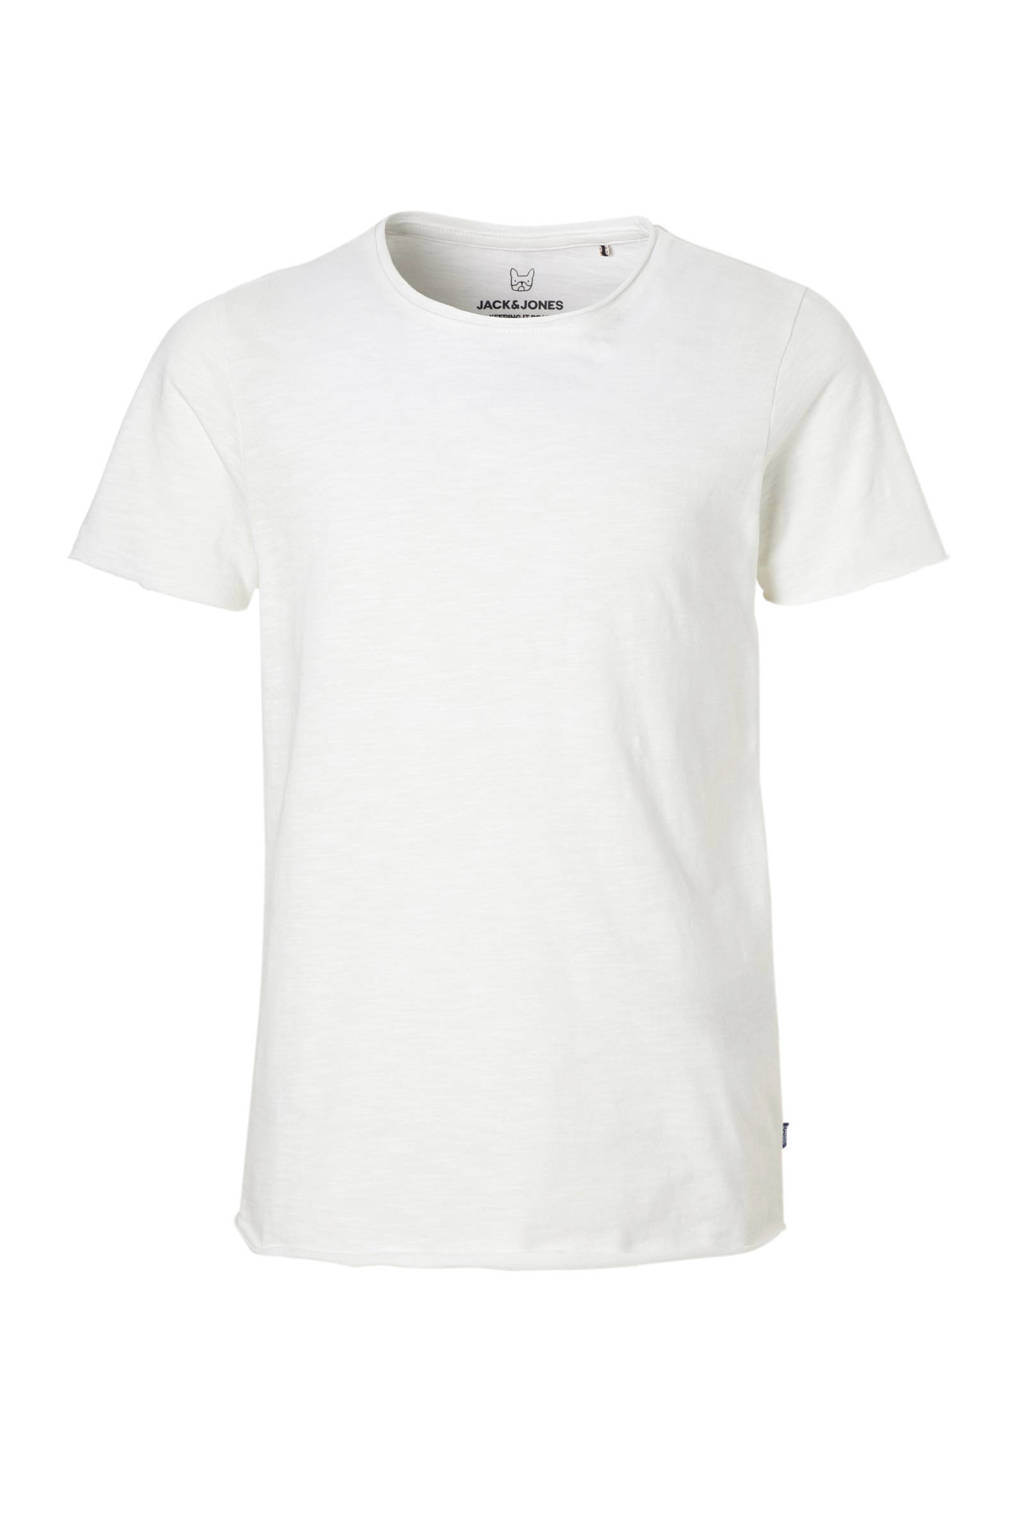 Jack & Jones Junior T-shirt Bas off white, Off White